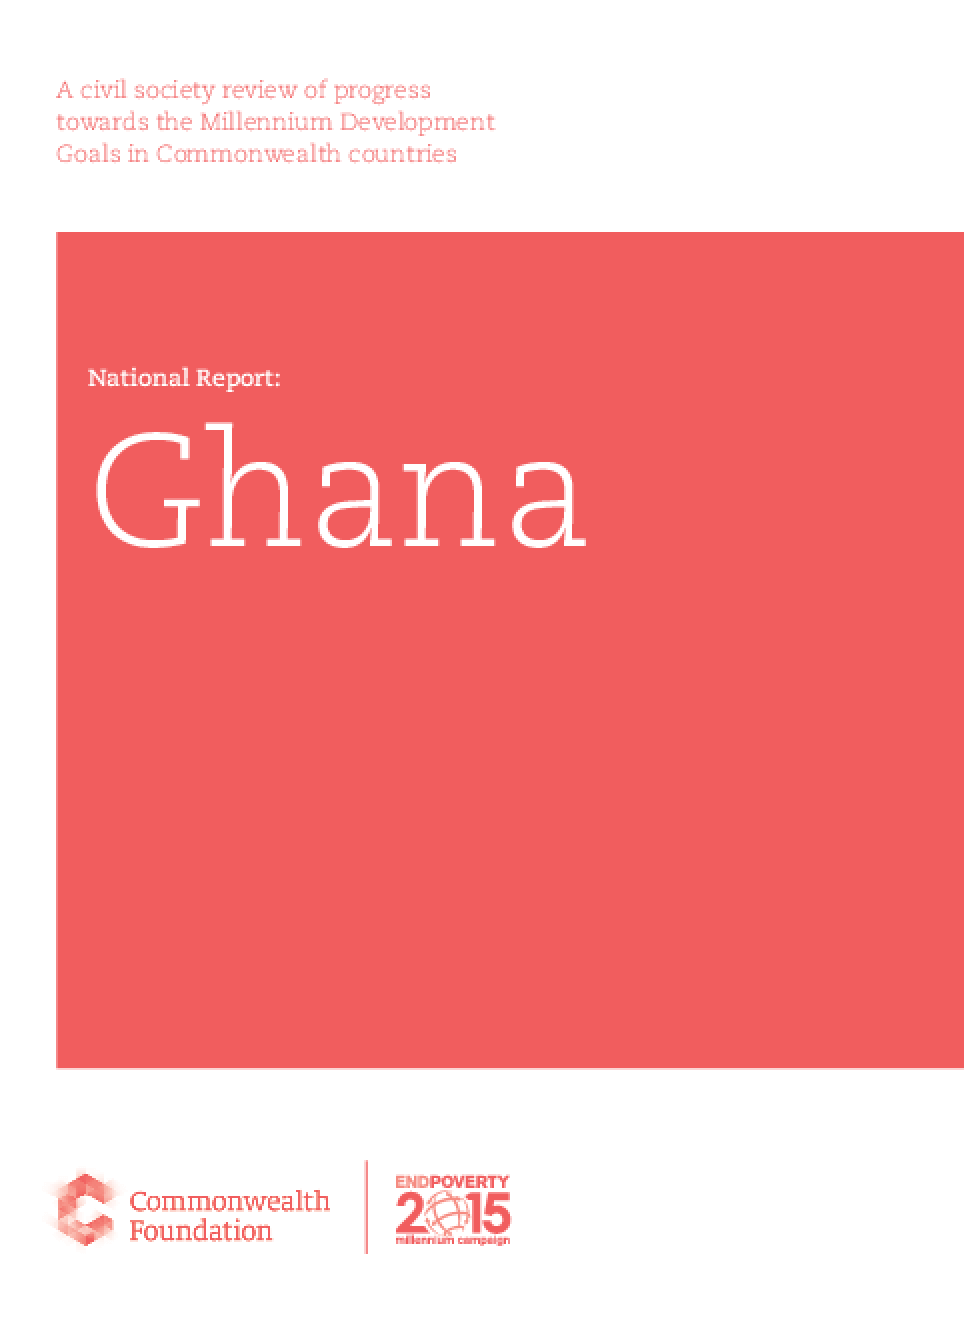 A Civil Society Review of Progress Towards the Millennium Development Goals in Commonwealth Countries National Report: Ghana